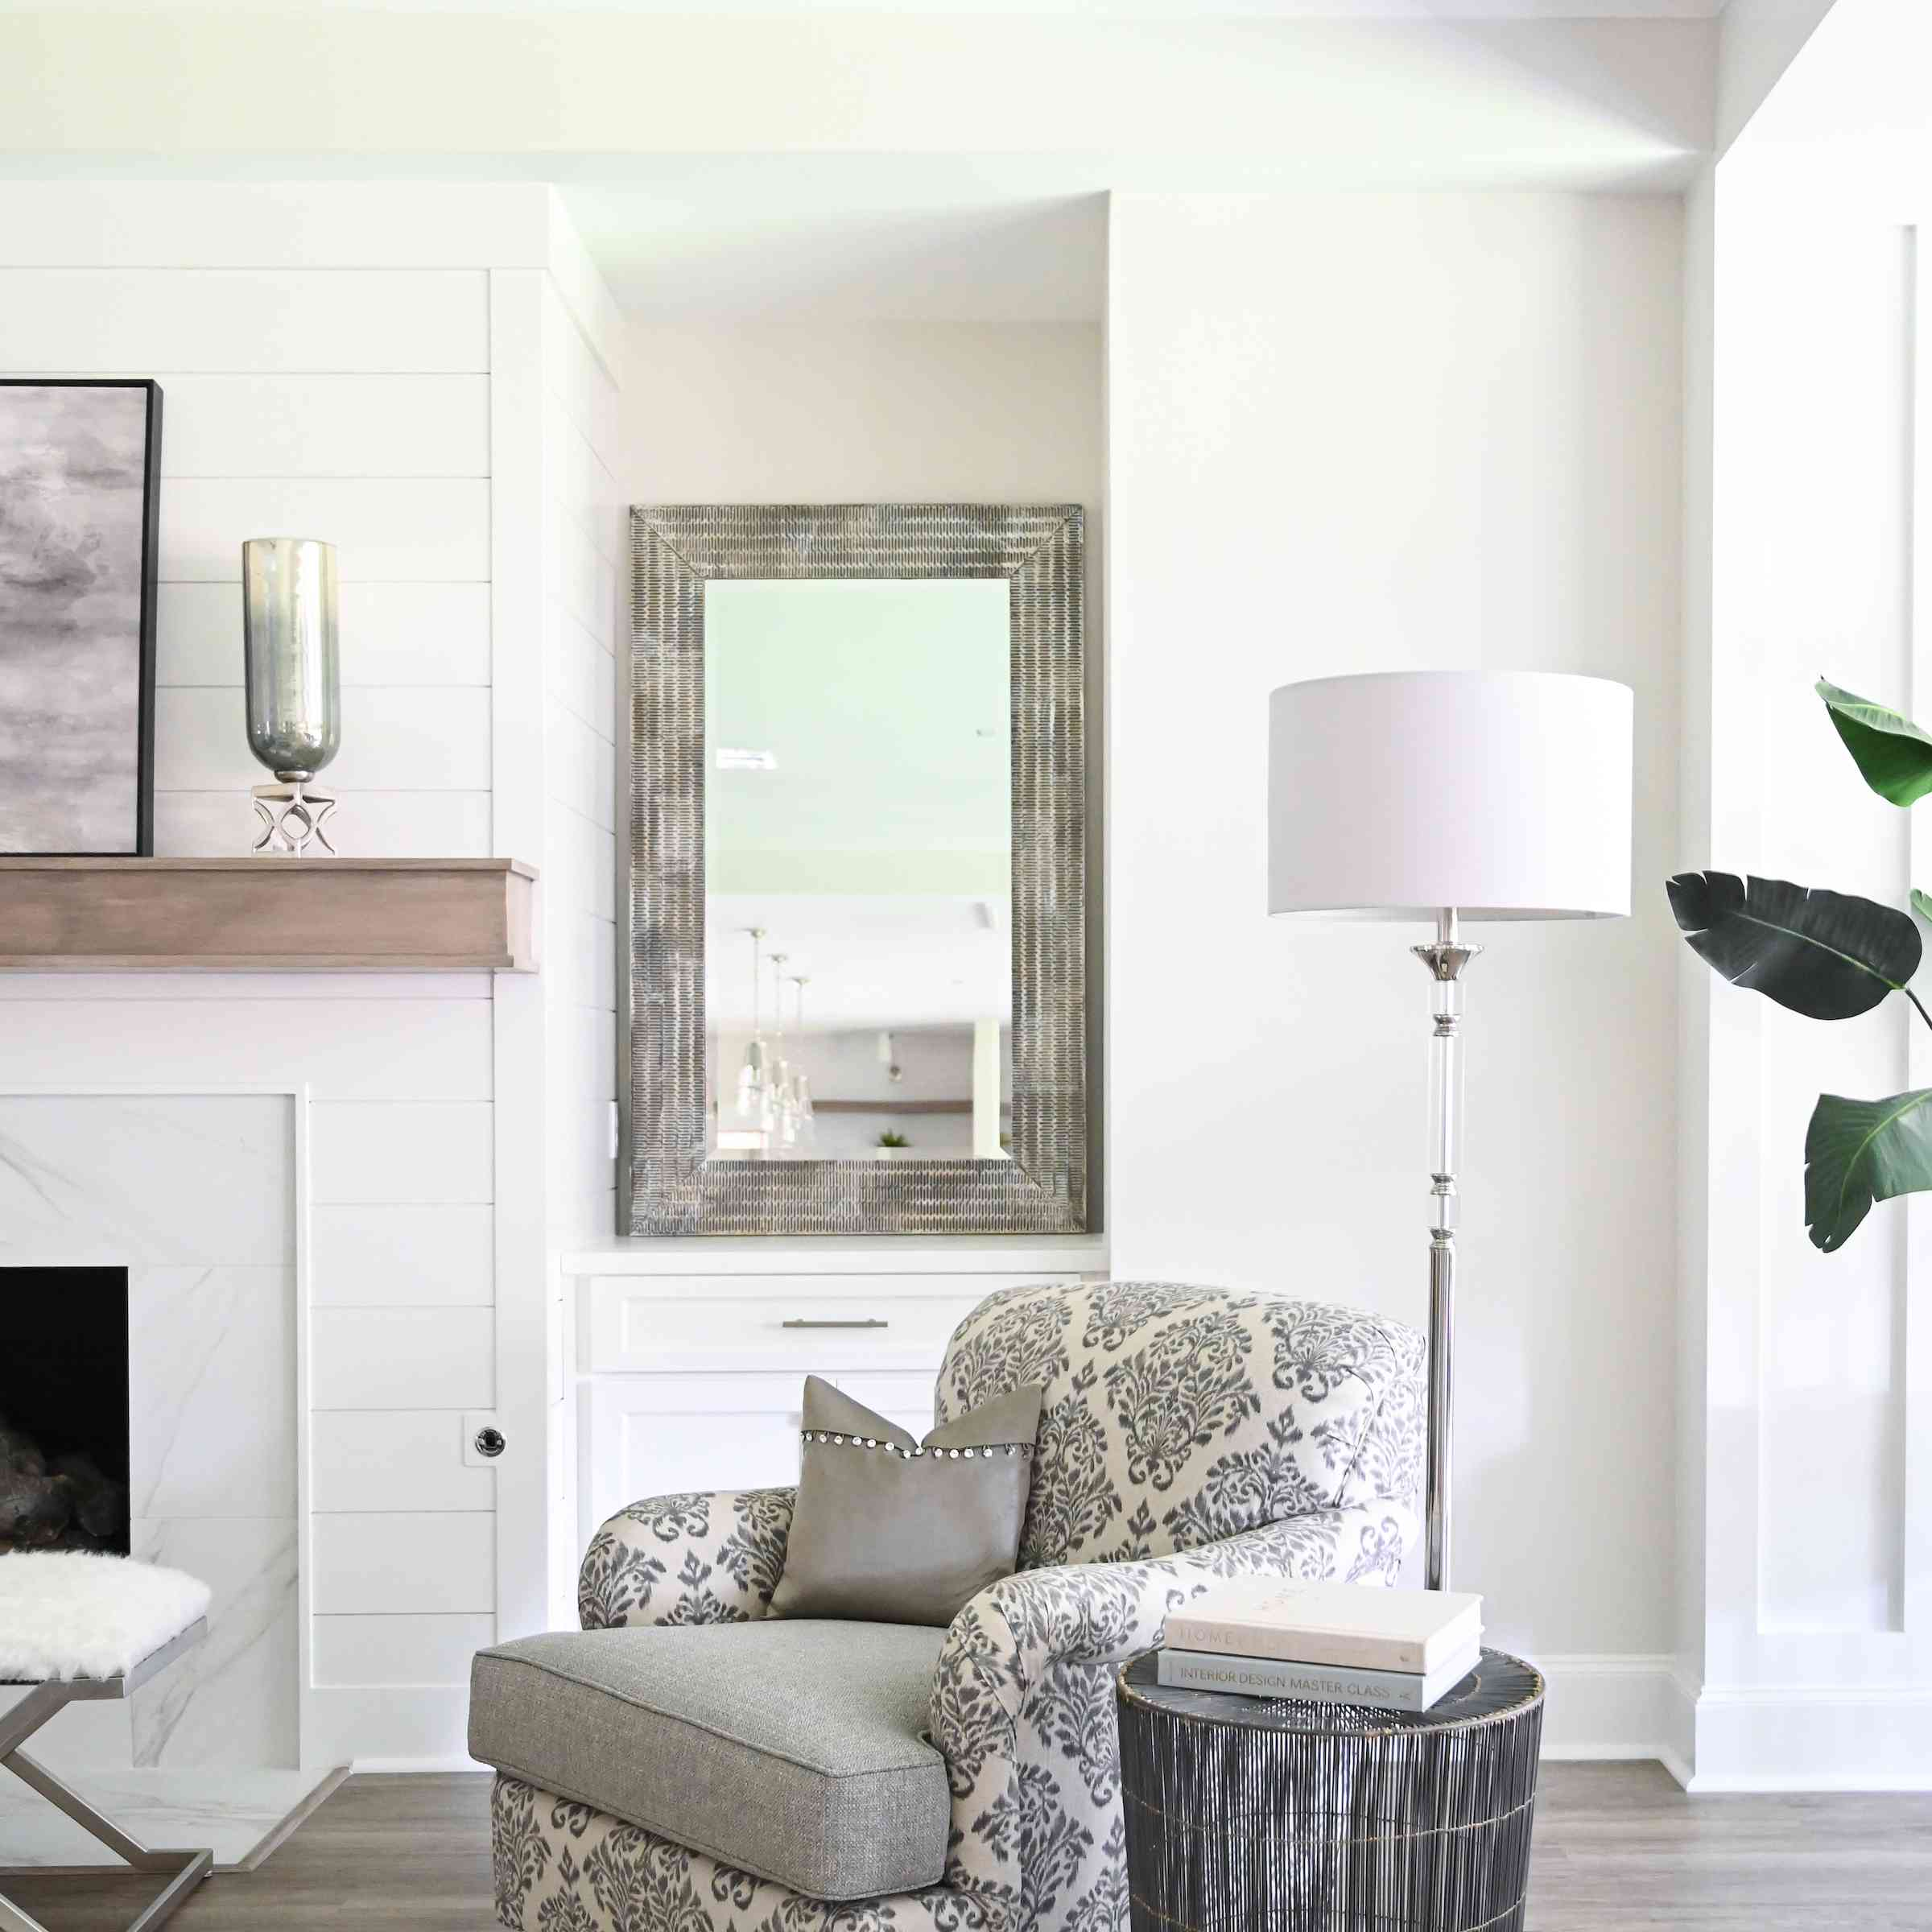 Sitting area with black and white battered chair and silver lamp.